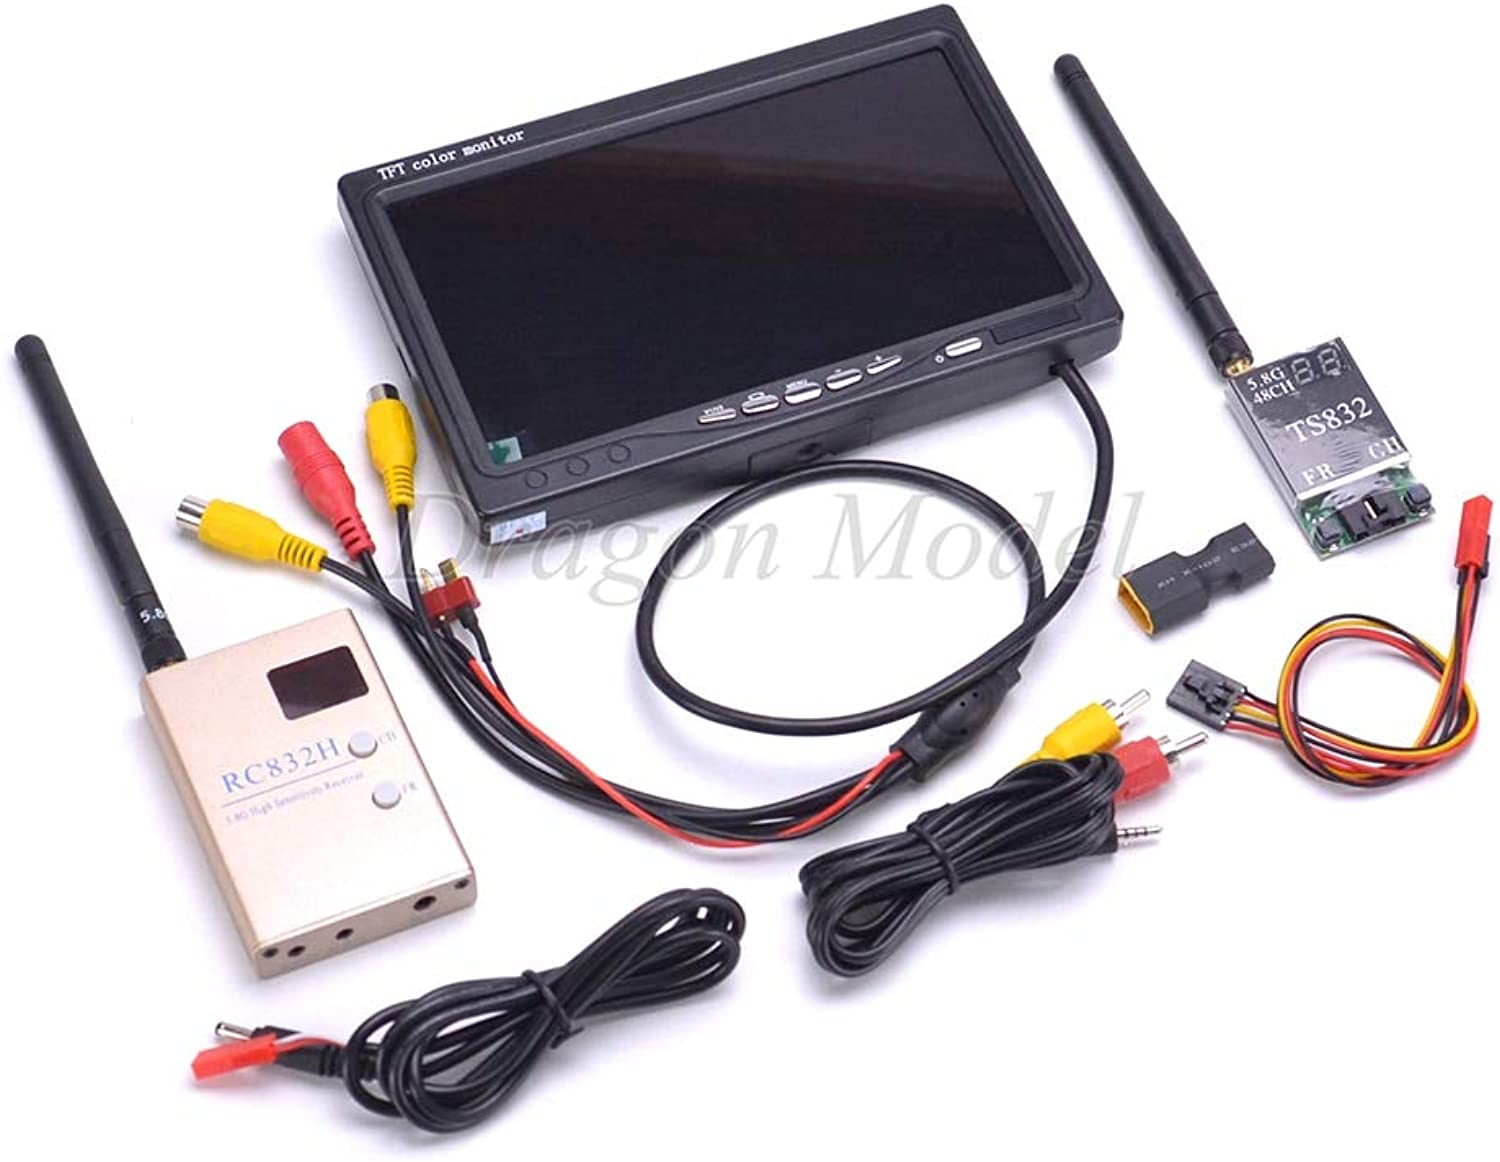 Laliva FPV 5.8G TS832 Transmitter RC832 RC832H Receiver 600mW 48CH & 7 inch 7  LCD TFT 1024 x 600 Monitor NO bluee for FPV RC Quadcopter